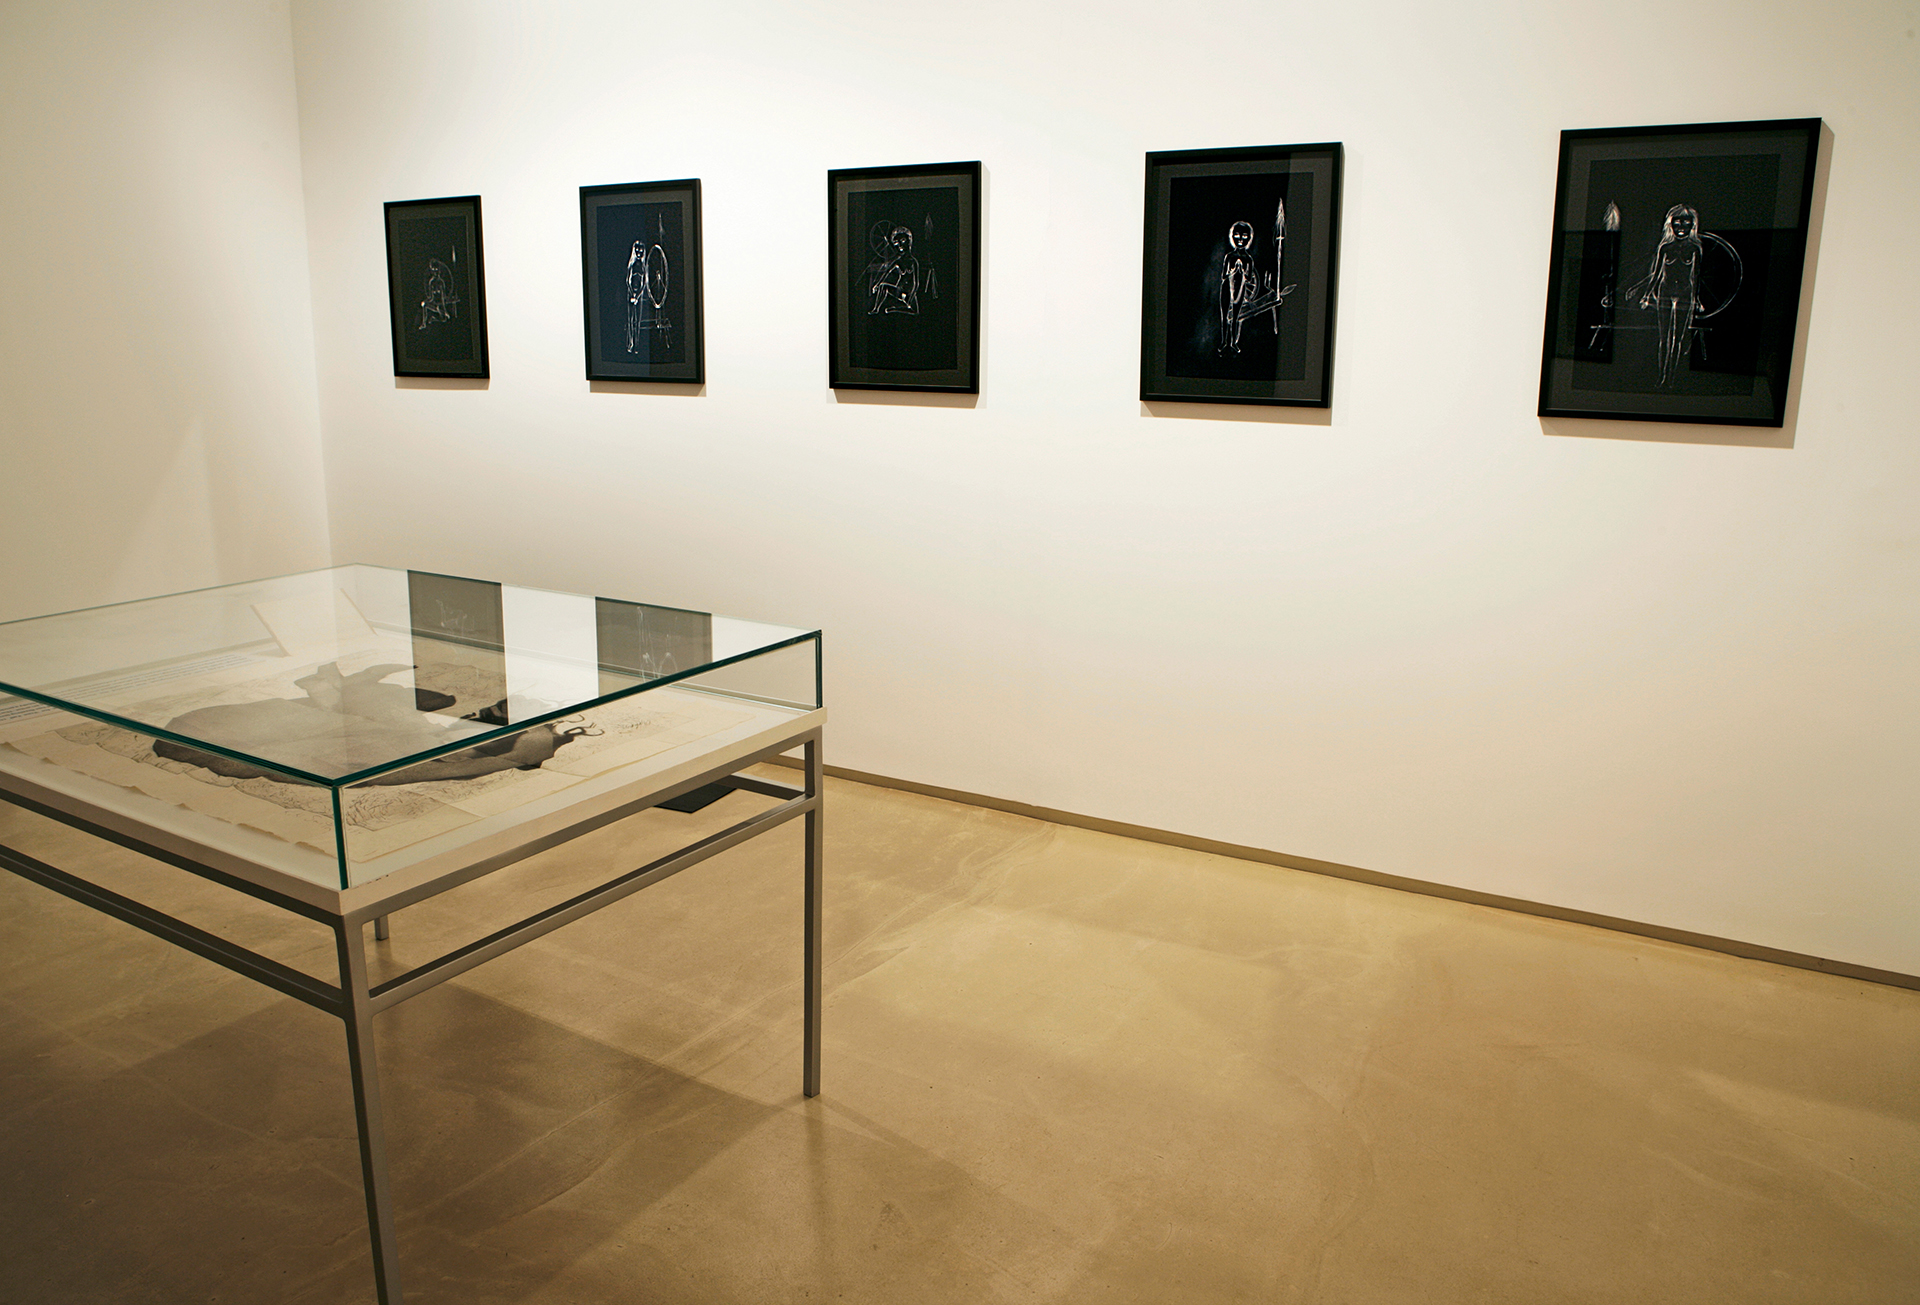 Kiki Smith, a glass case displaying image and text, works from the black work series, at Galerie Mirchandani + Steinruecke | Kiki Smith | Galerie Mirchandani + Steinruecke | STIRworld